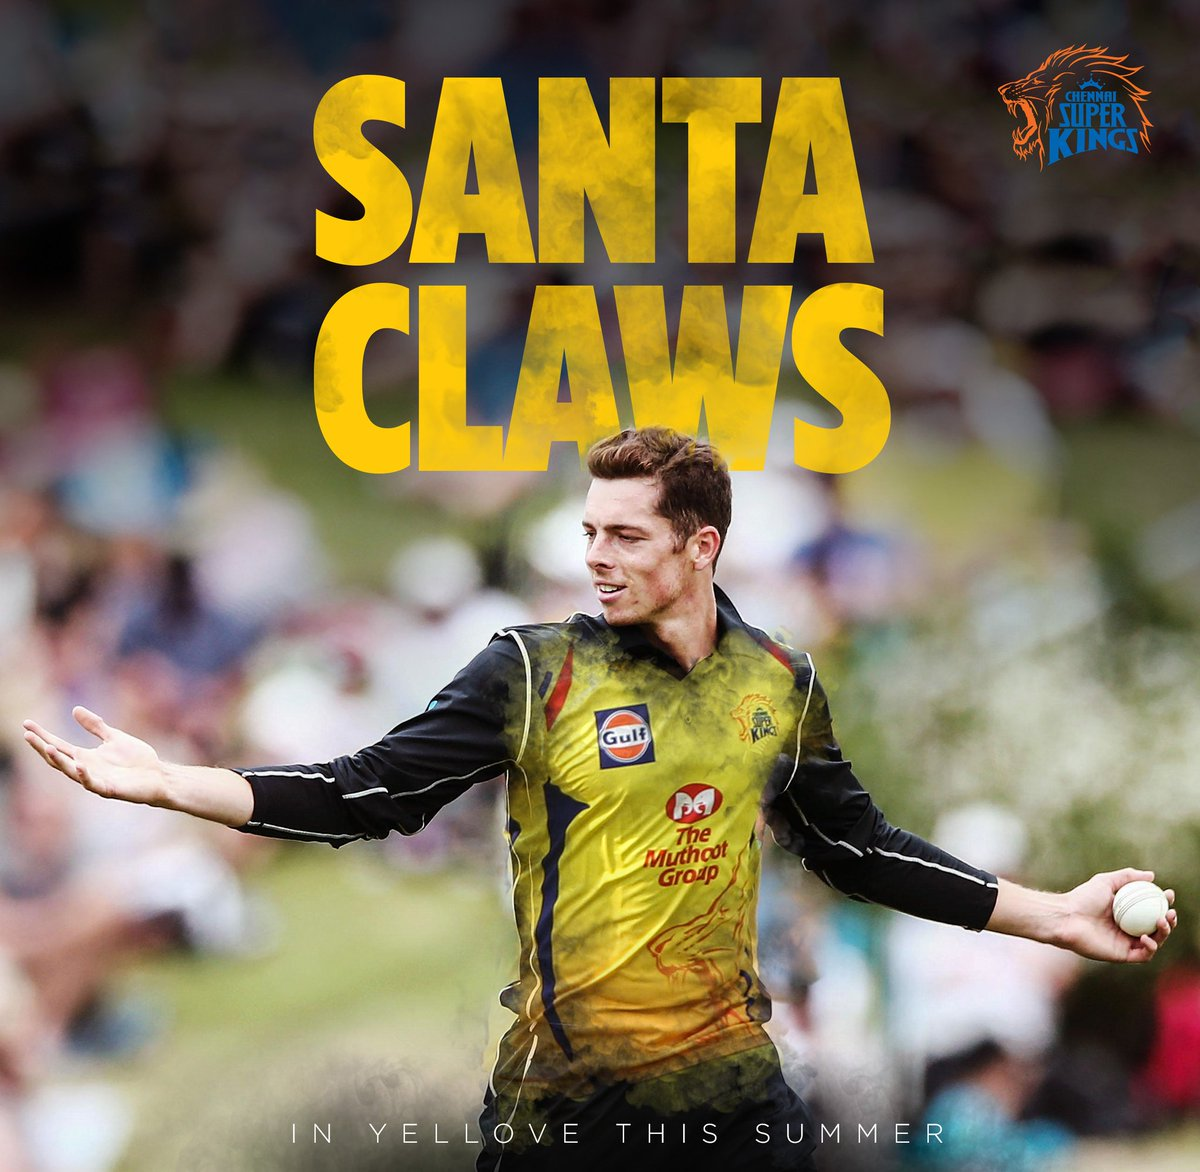 Santa Claws will be sporting #Yellove for the #SummerOf19 bringing along a lot of those prized wickets and vital runs! #WhistlePodu 🦁💛